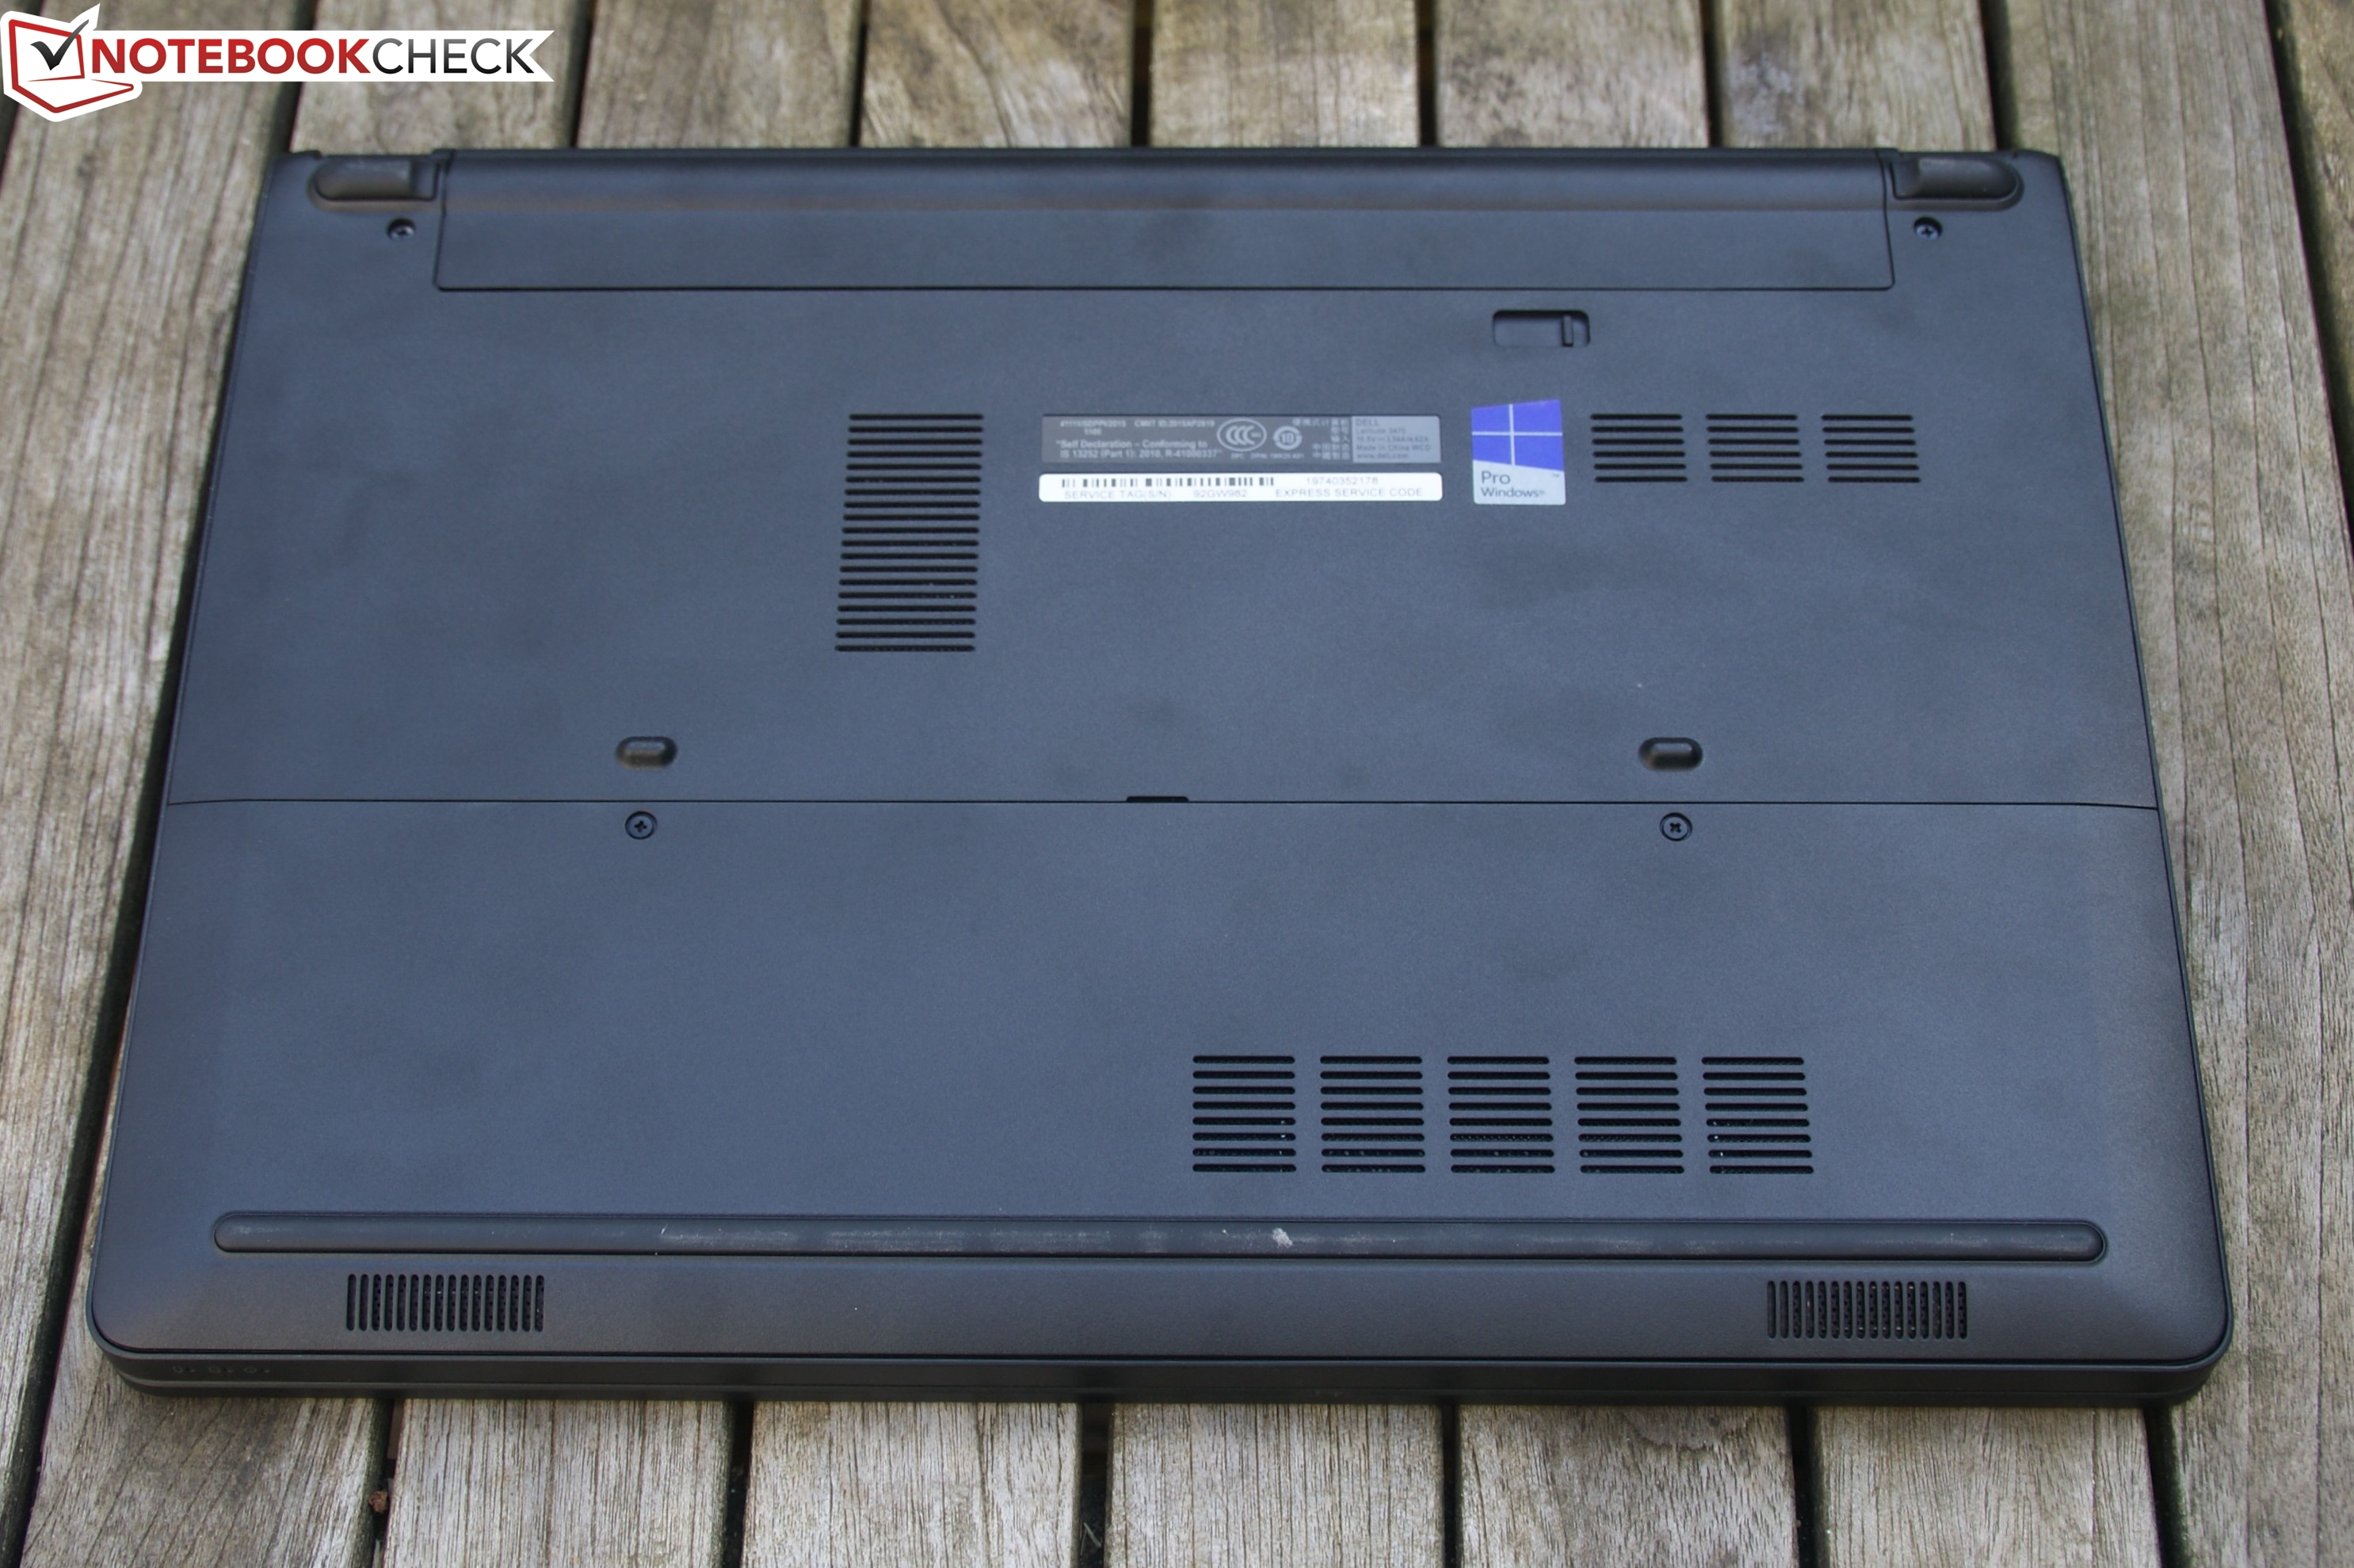 Dell Latitude 14 3470 Notebook Review Notebookcheck Net